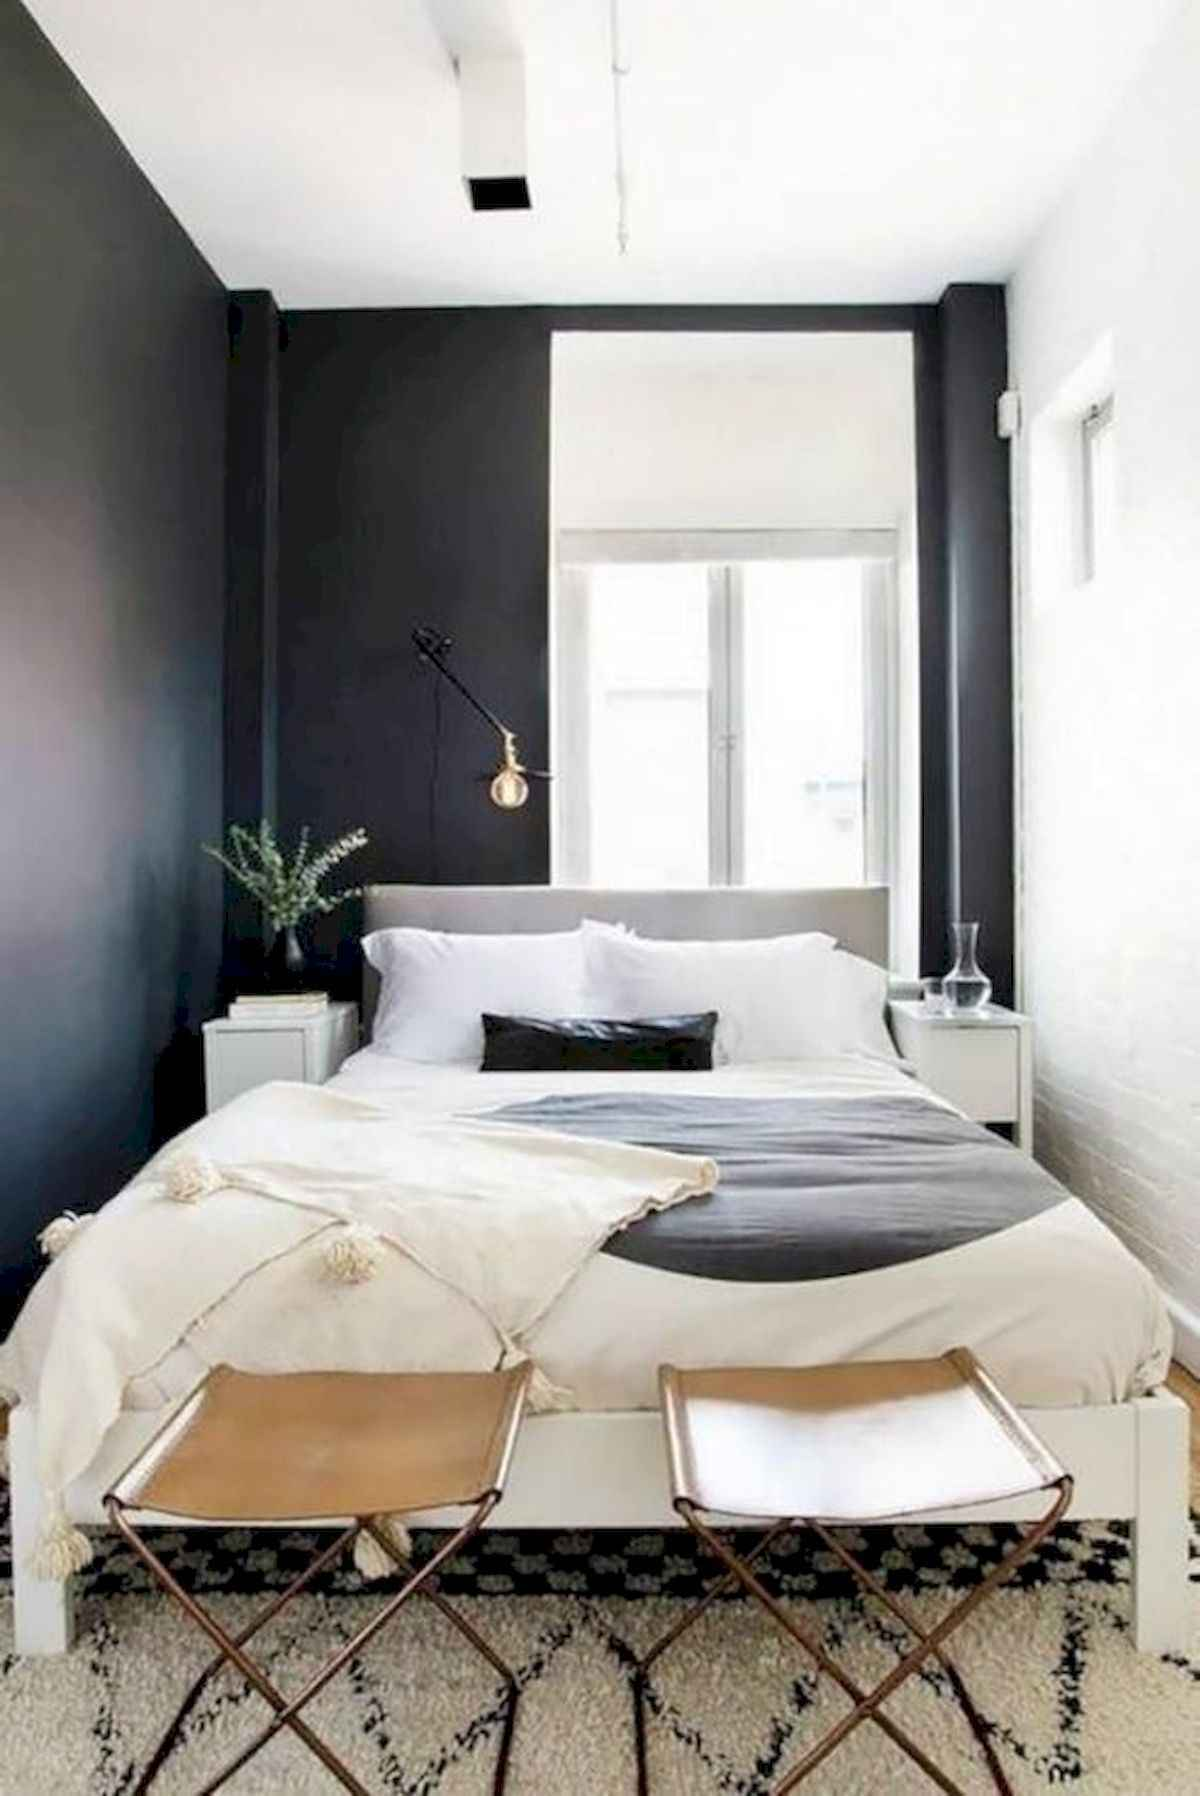 40 creative small apartment bedroom decor ideas (14) - Roomadness.com